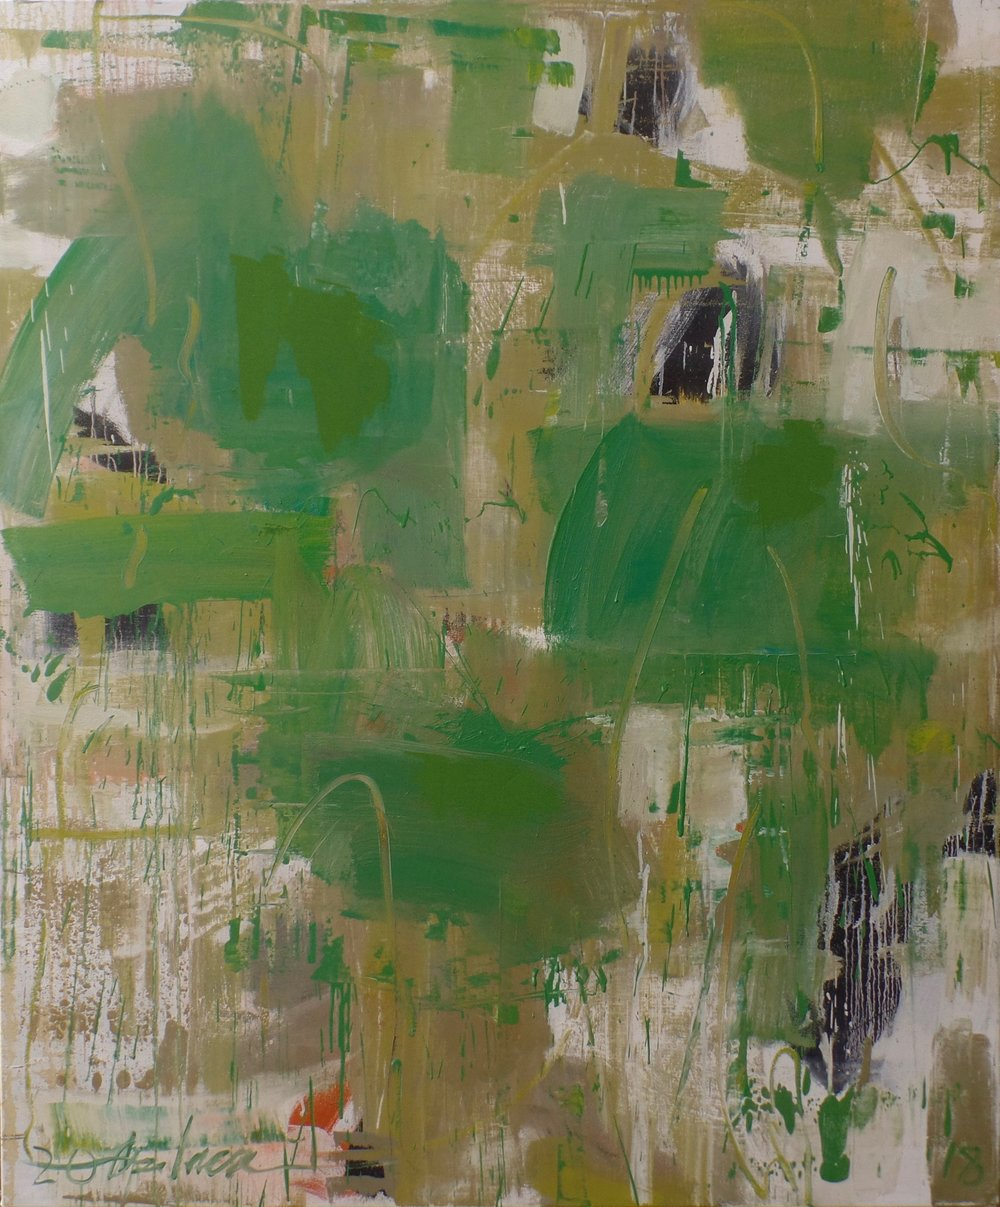 Untitled Green 2018